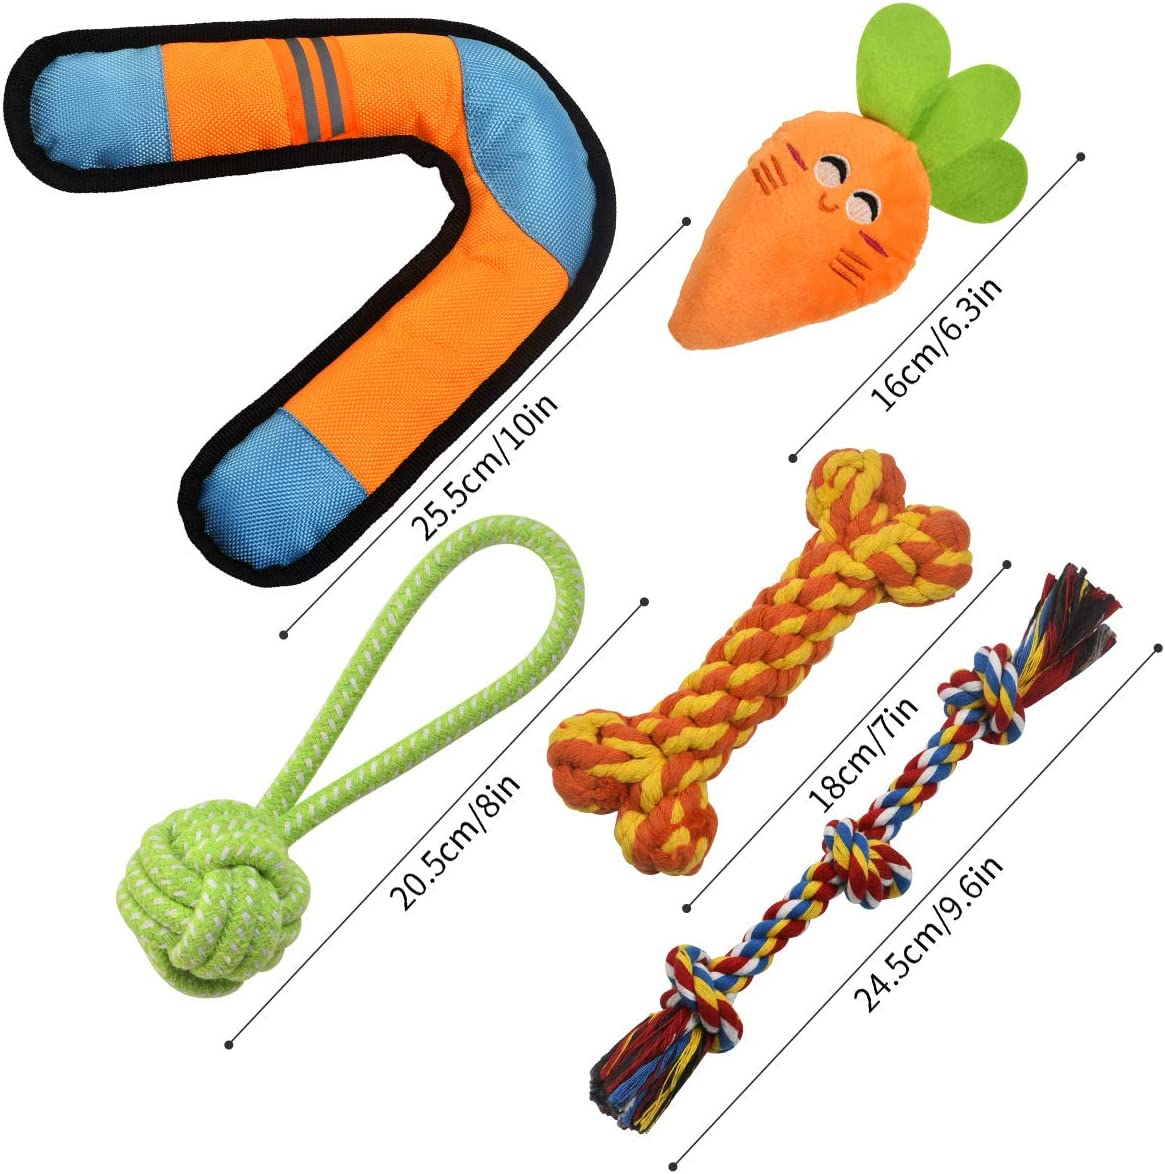 Pack of 5 BearFun Dog Toy Set for Small Dogs Puppy Teething for Small//Medium Dog Pets Puppy Rope,Teething,Squeaky,Chew Toys Tough Durable Dental Chew Toys Kit for Middle Breeds